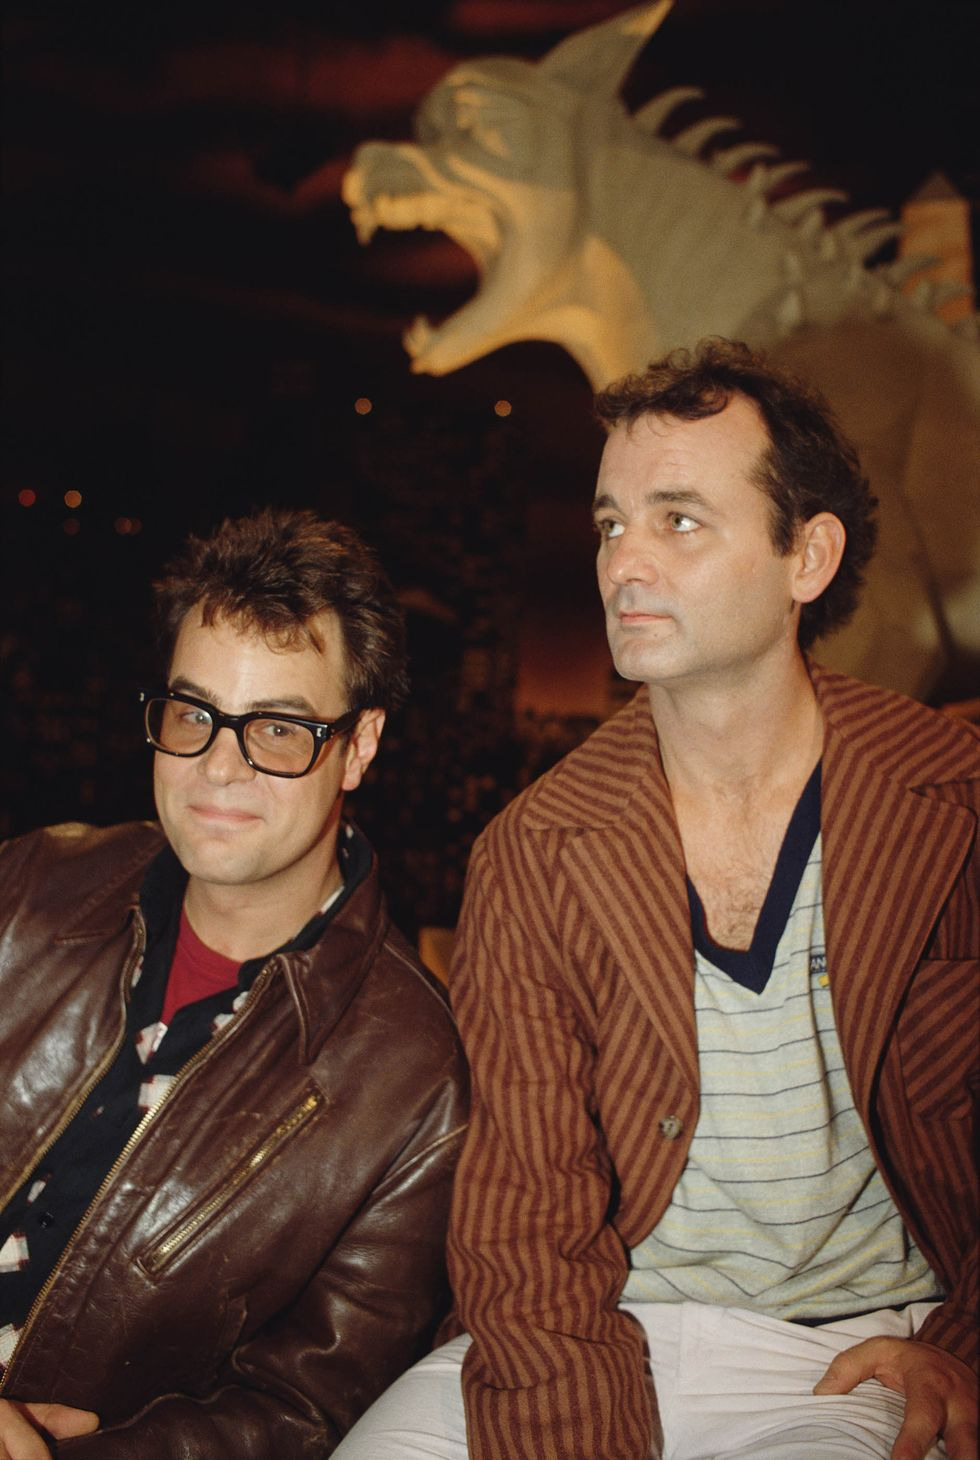 Dan Aykroyd and Bill Murray attend the premiere of the movie Ghostbusters , directed and produced by Ivan Reitman in 1974.